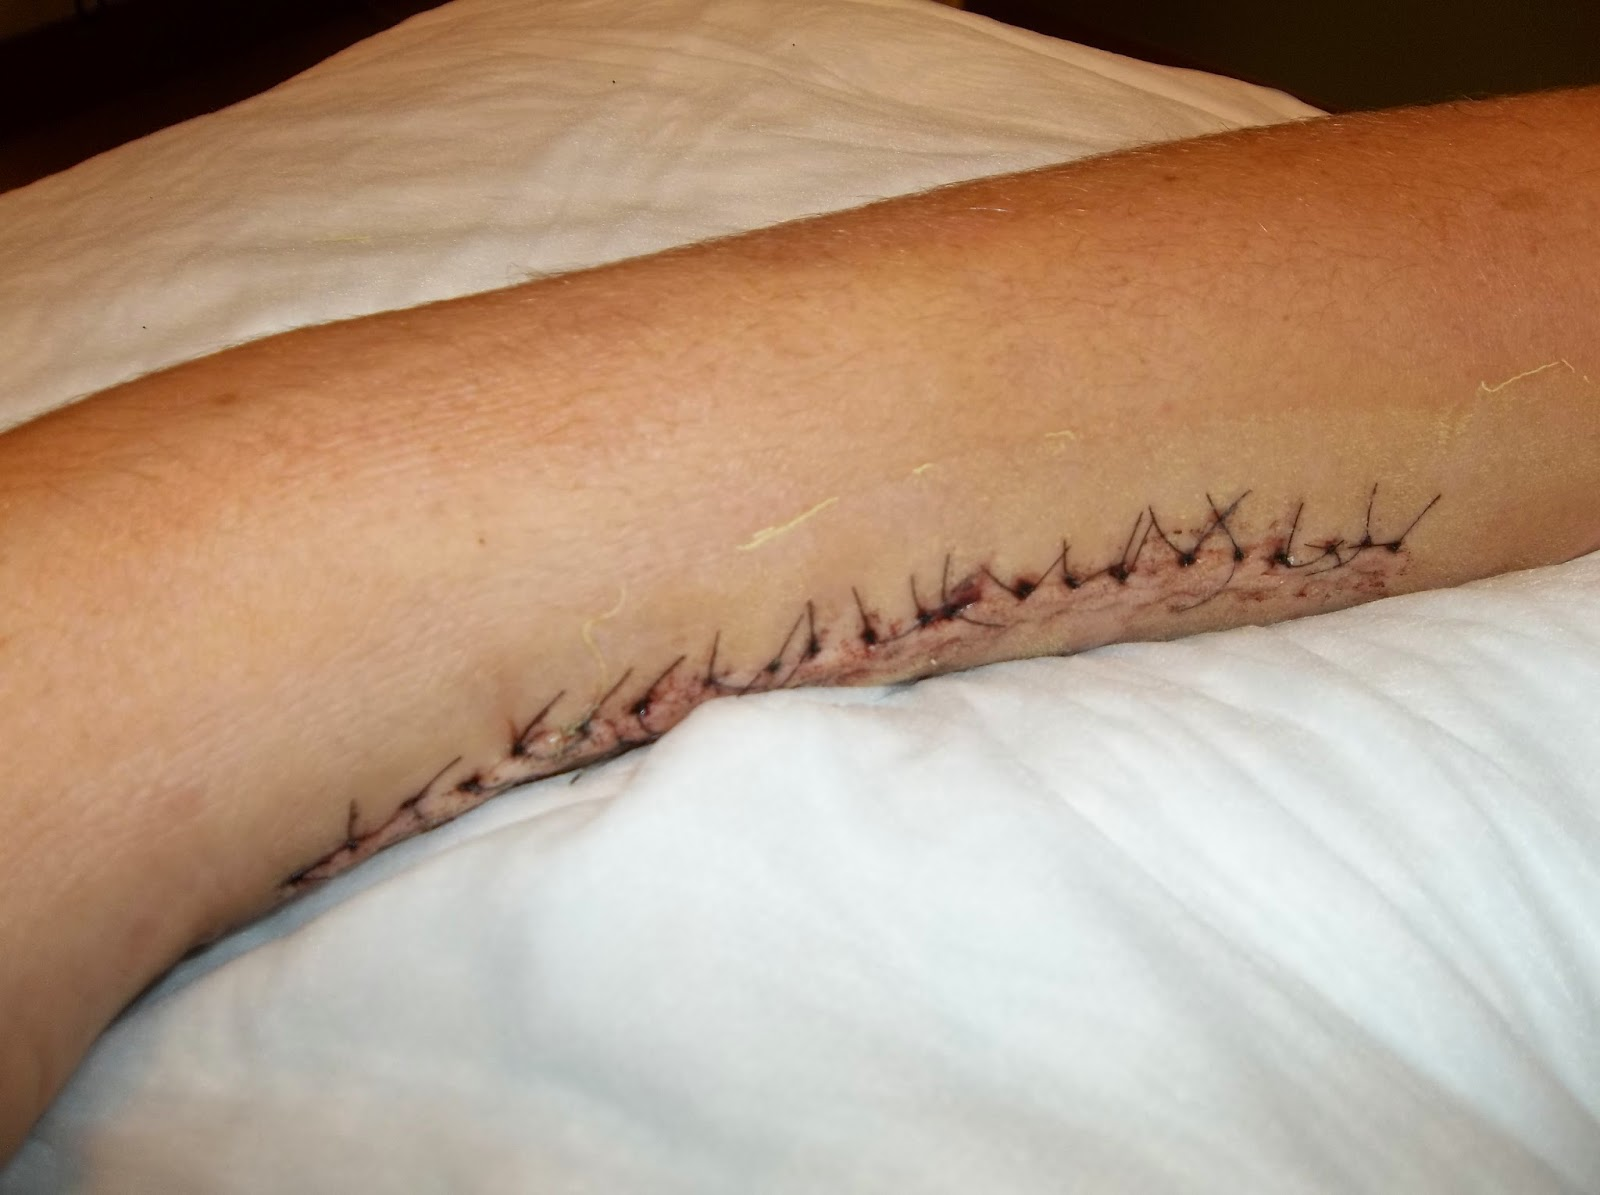 Cut Wrist Stitches